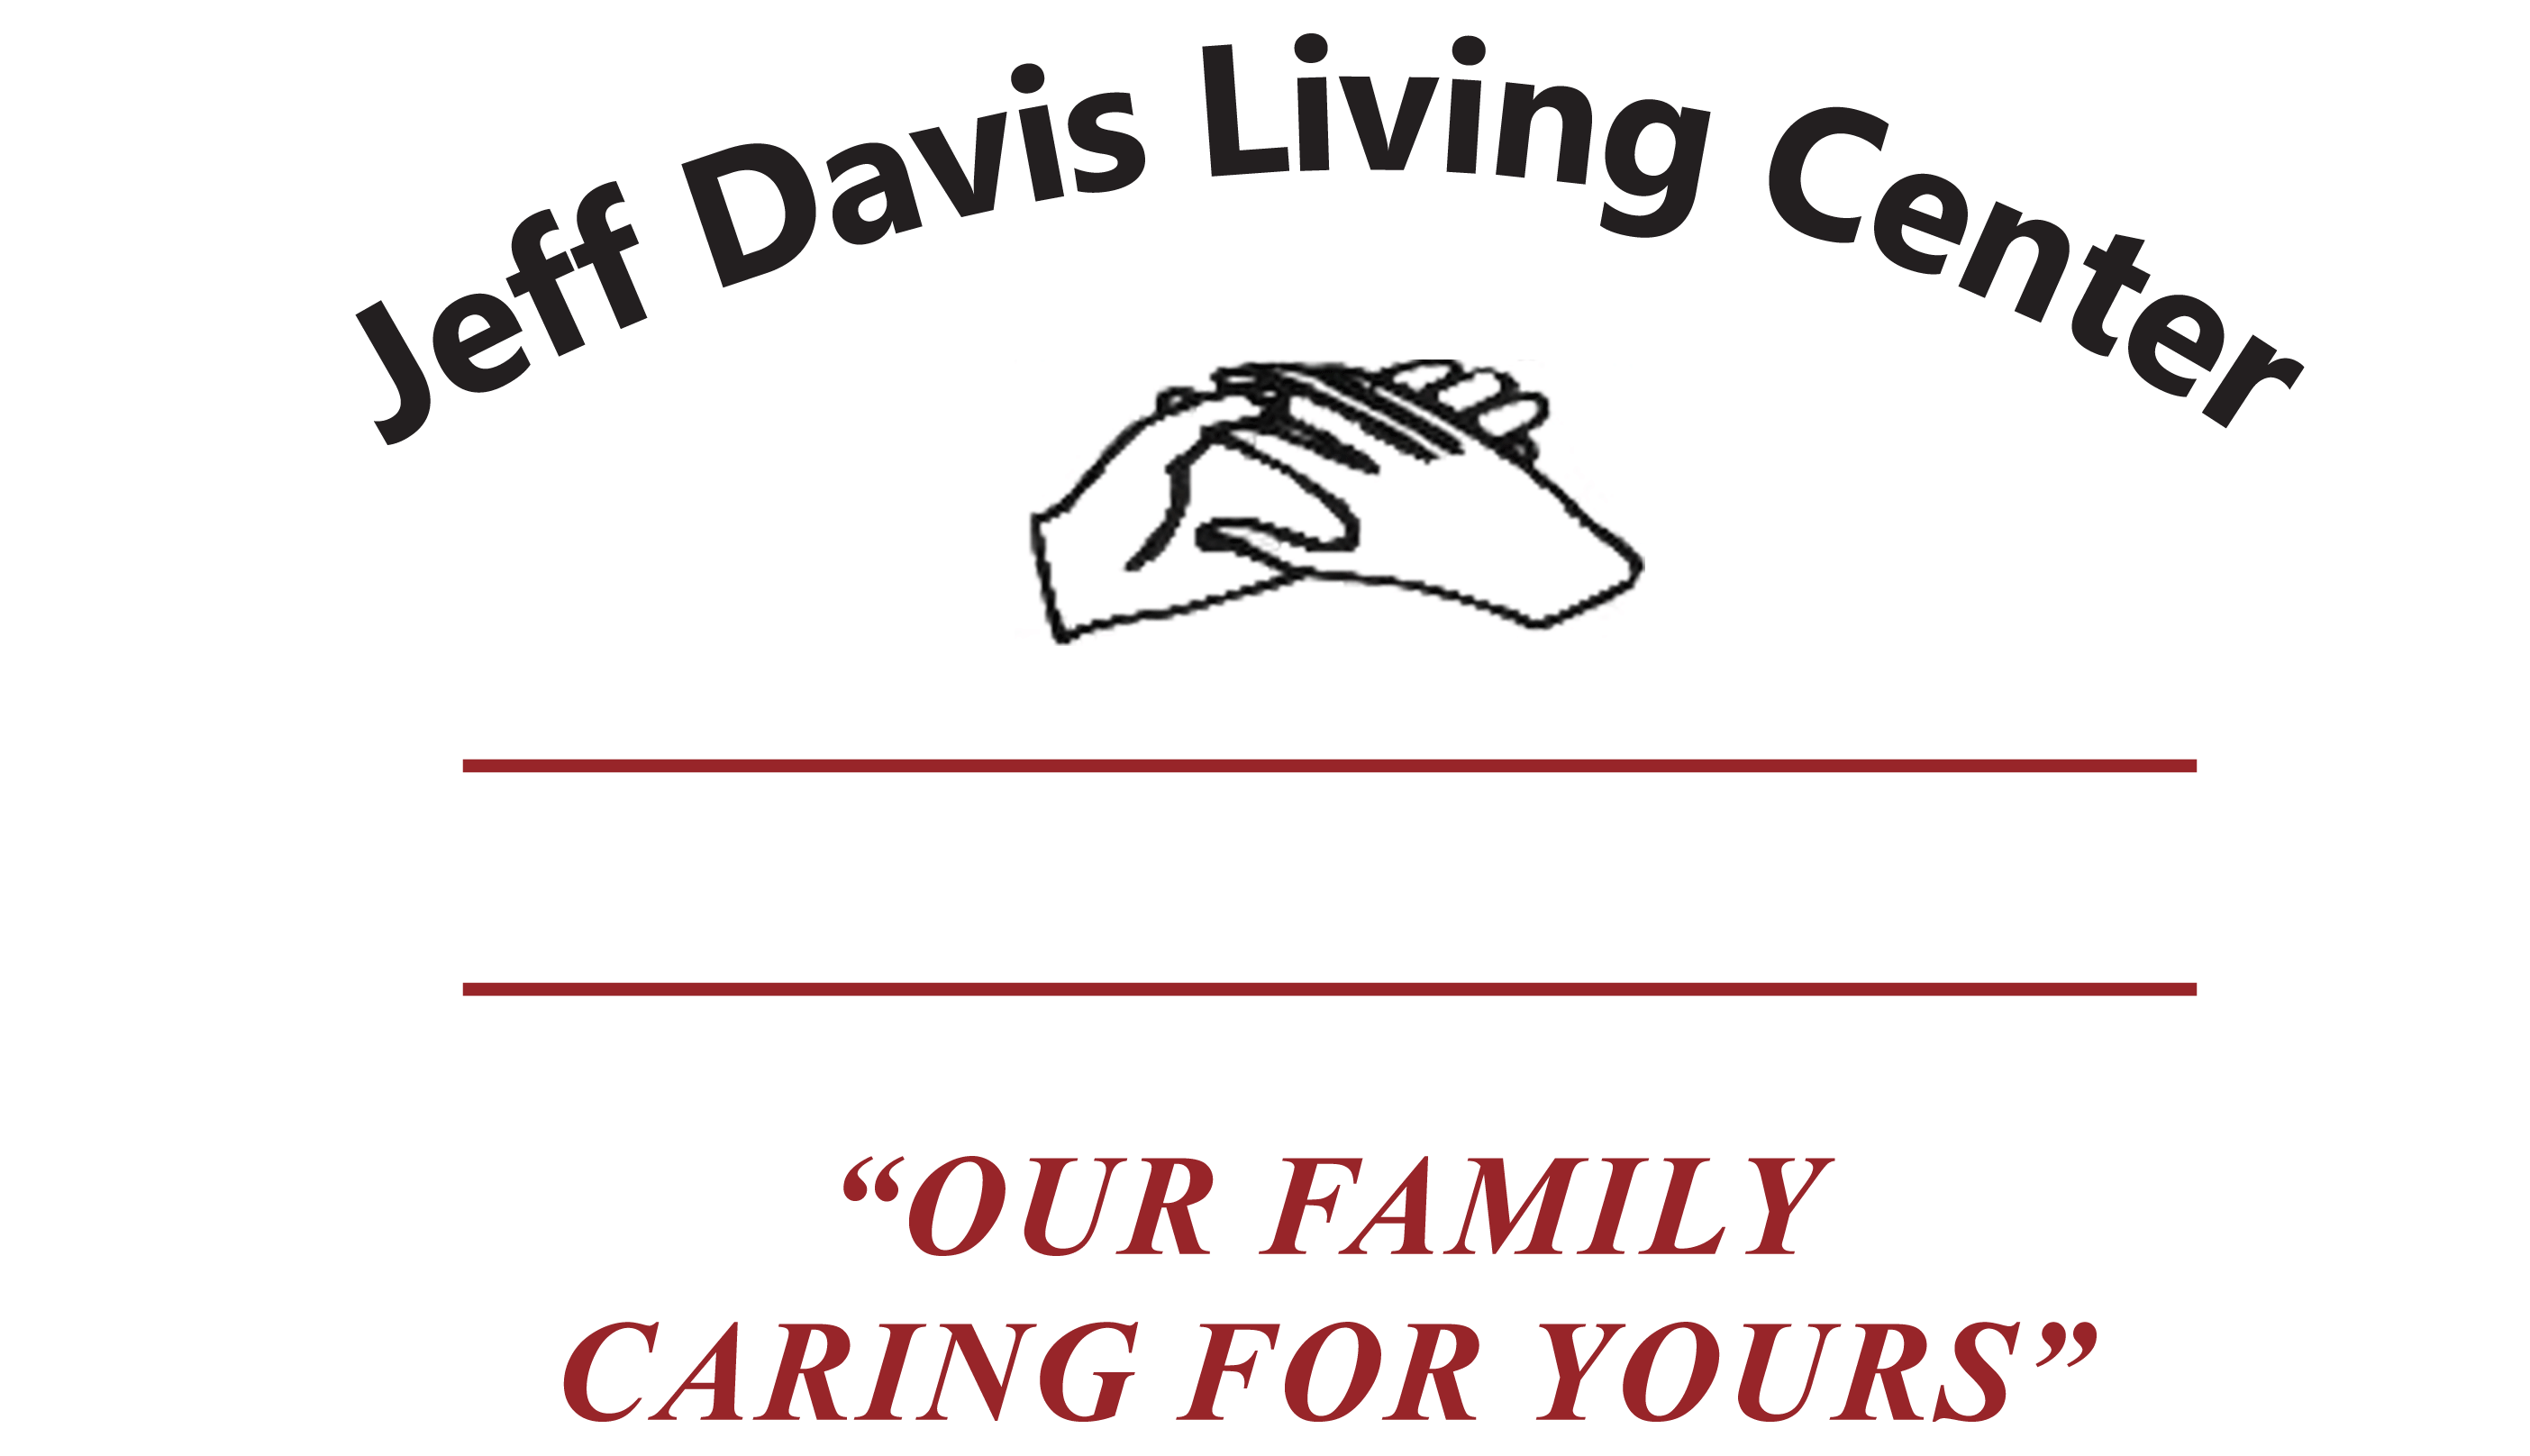 Jeff Davis Living Center